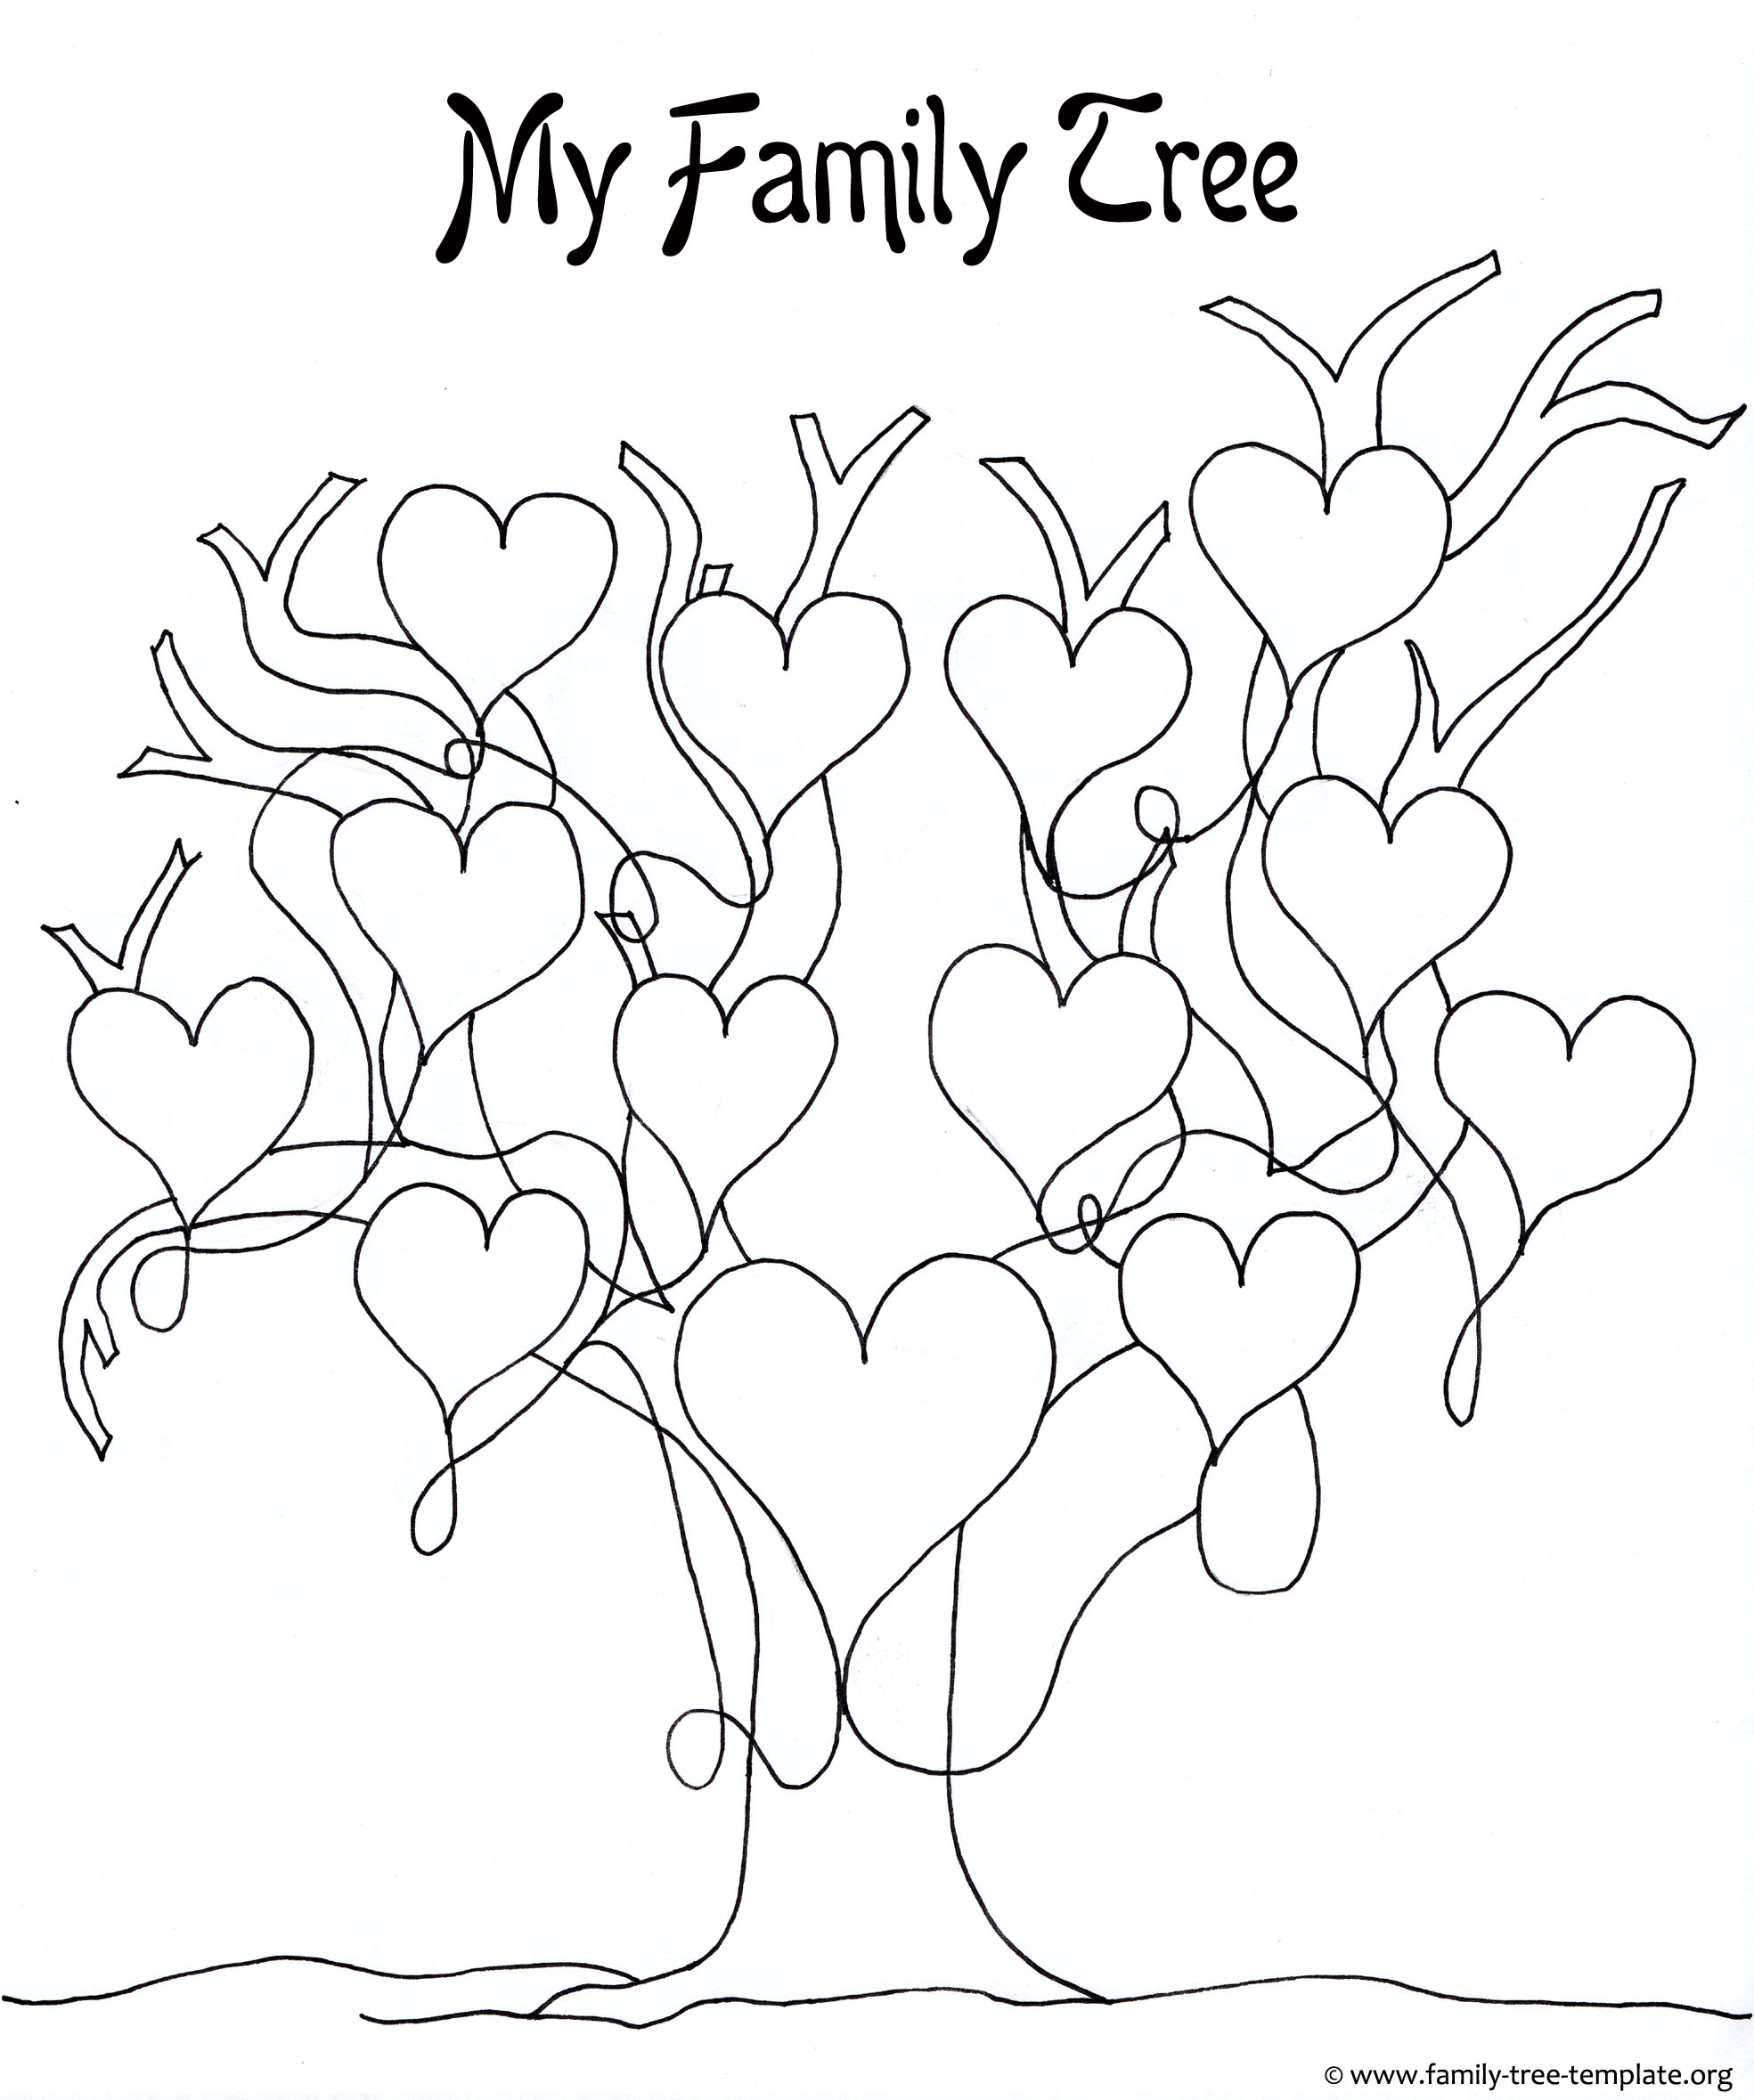 A Printable Blank Family Tree To Make Your Kids Genealogy Blank Tree Coloring Page